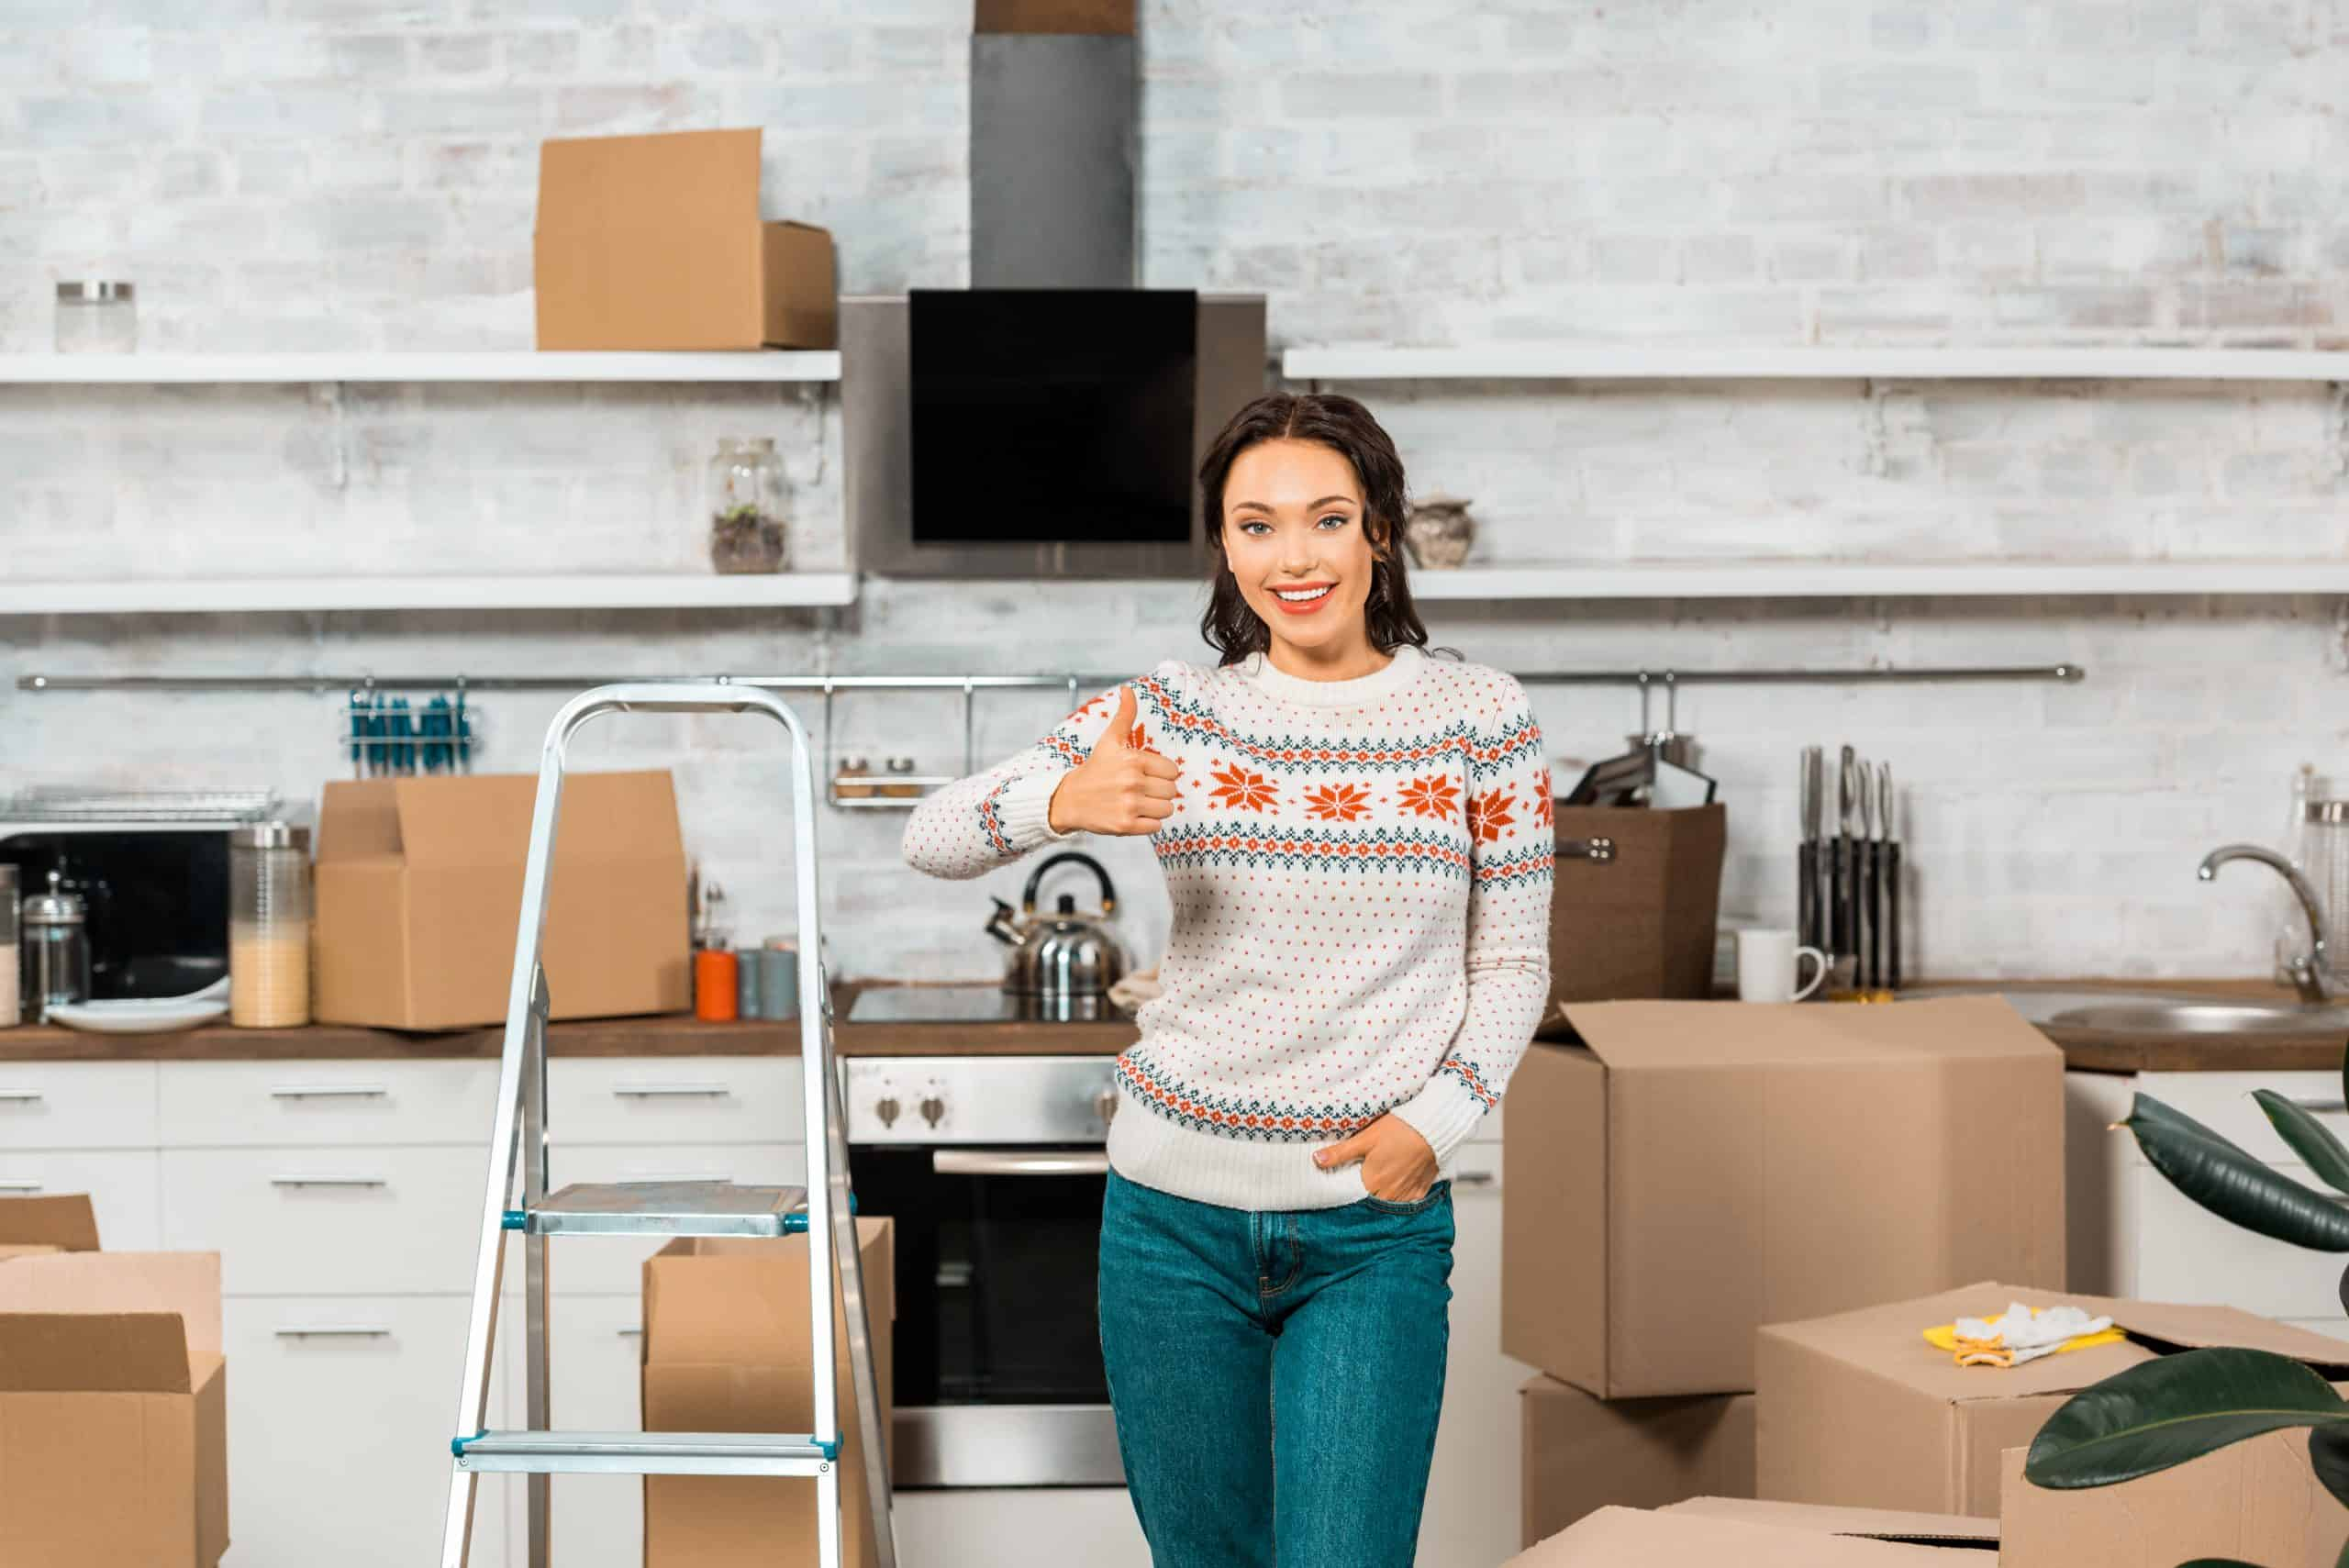 Declutter your home - Woman in kitchen with boxes giving the thumbs up